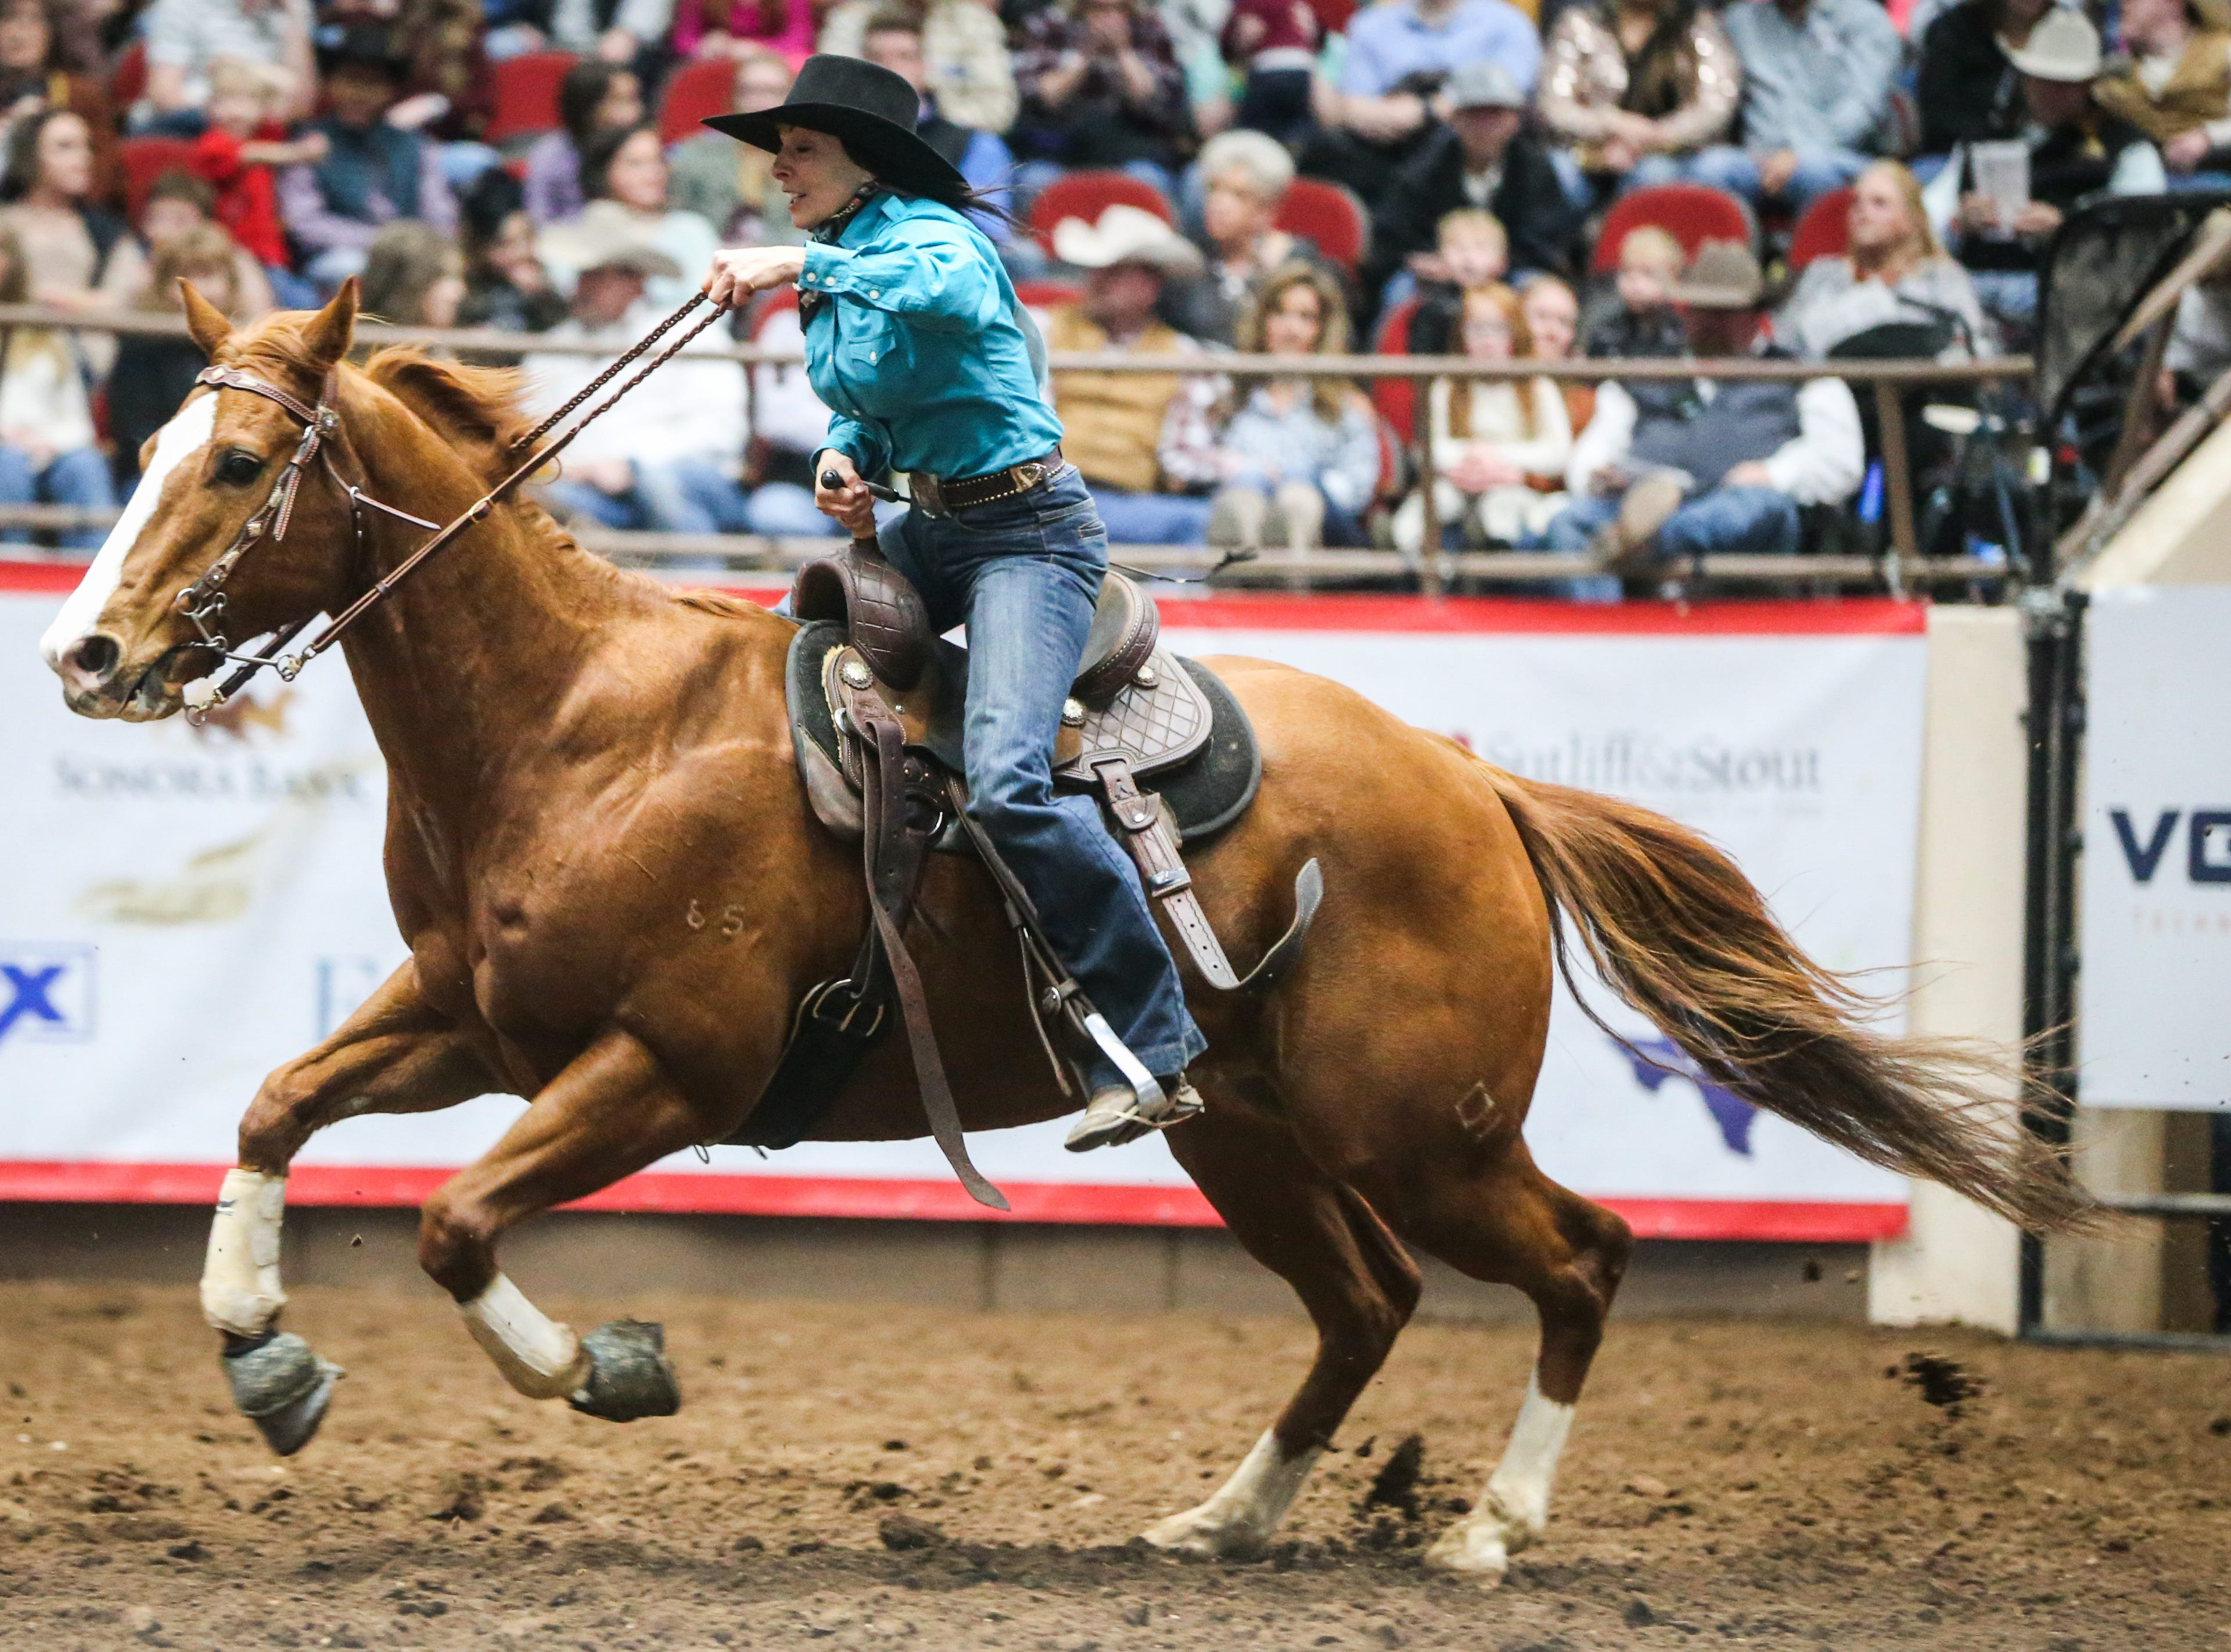 Teri Bangart races the barrels during finals of the San Angelo Stock Show & Rodeo Friday, Feb. 15, 2019, at Foster Communications Coliseum.